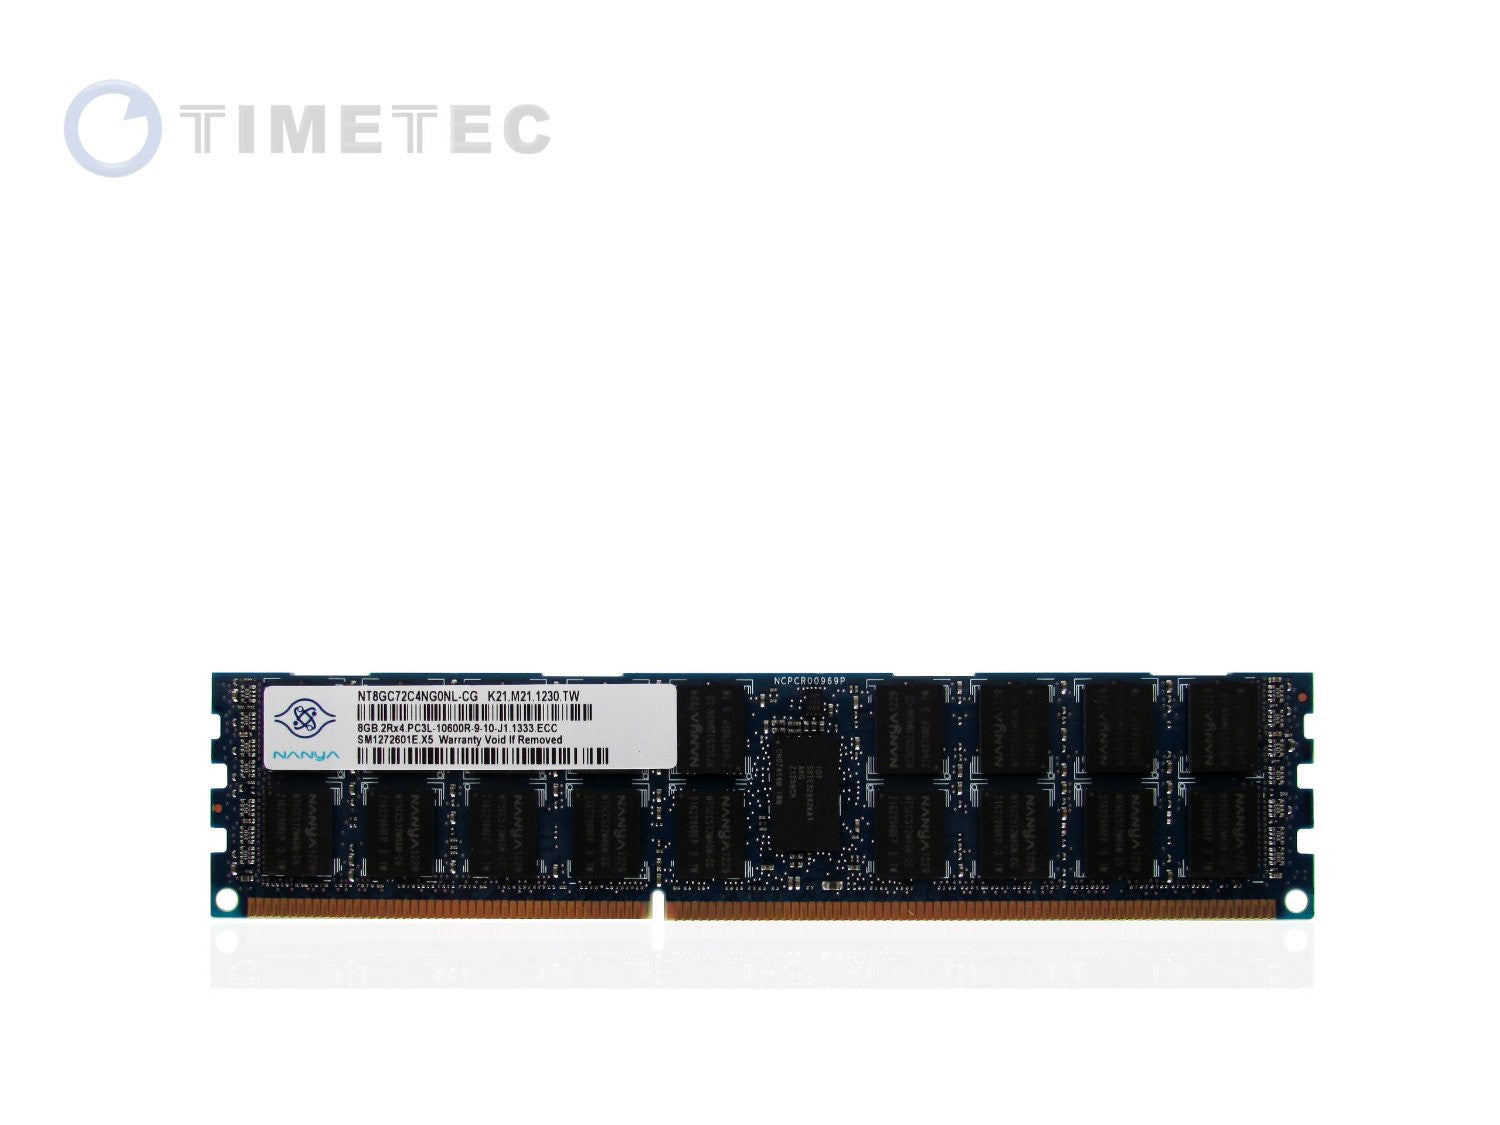 Nanya - 8GB DDR3 1333 (PC3-10600) Dual Rank SDRAM ECC Server Memory RAM